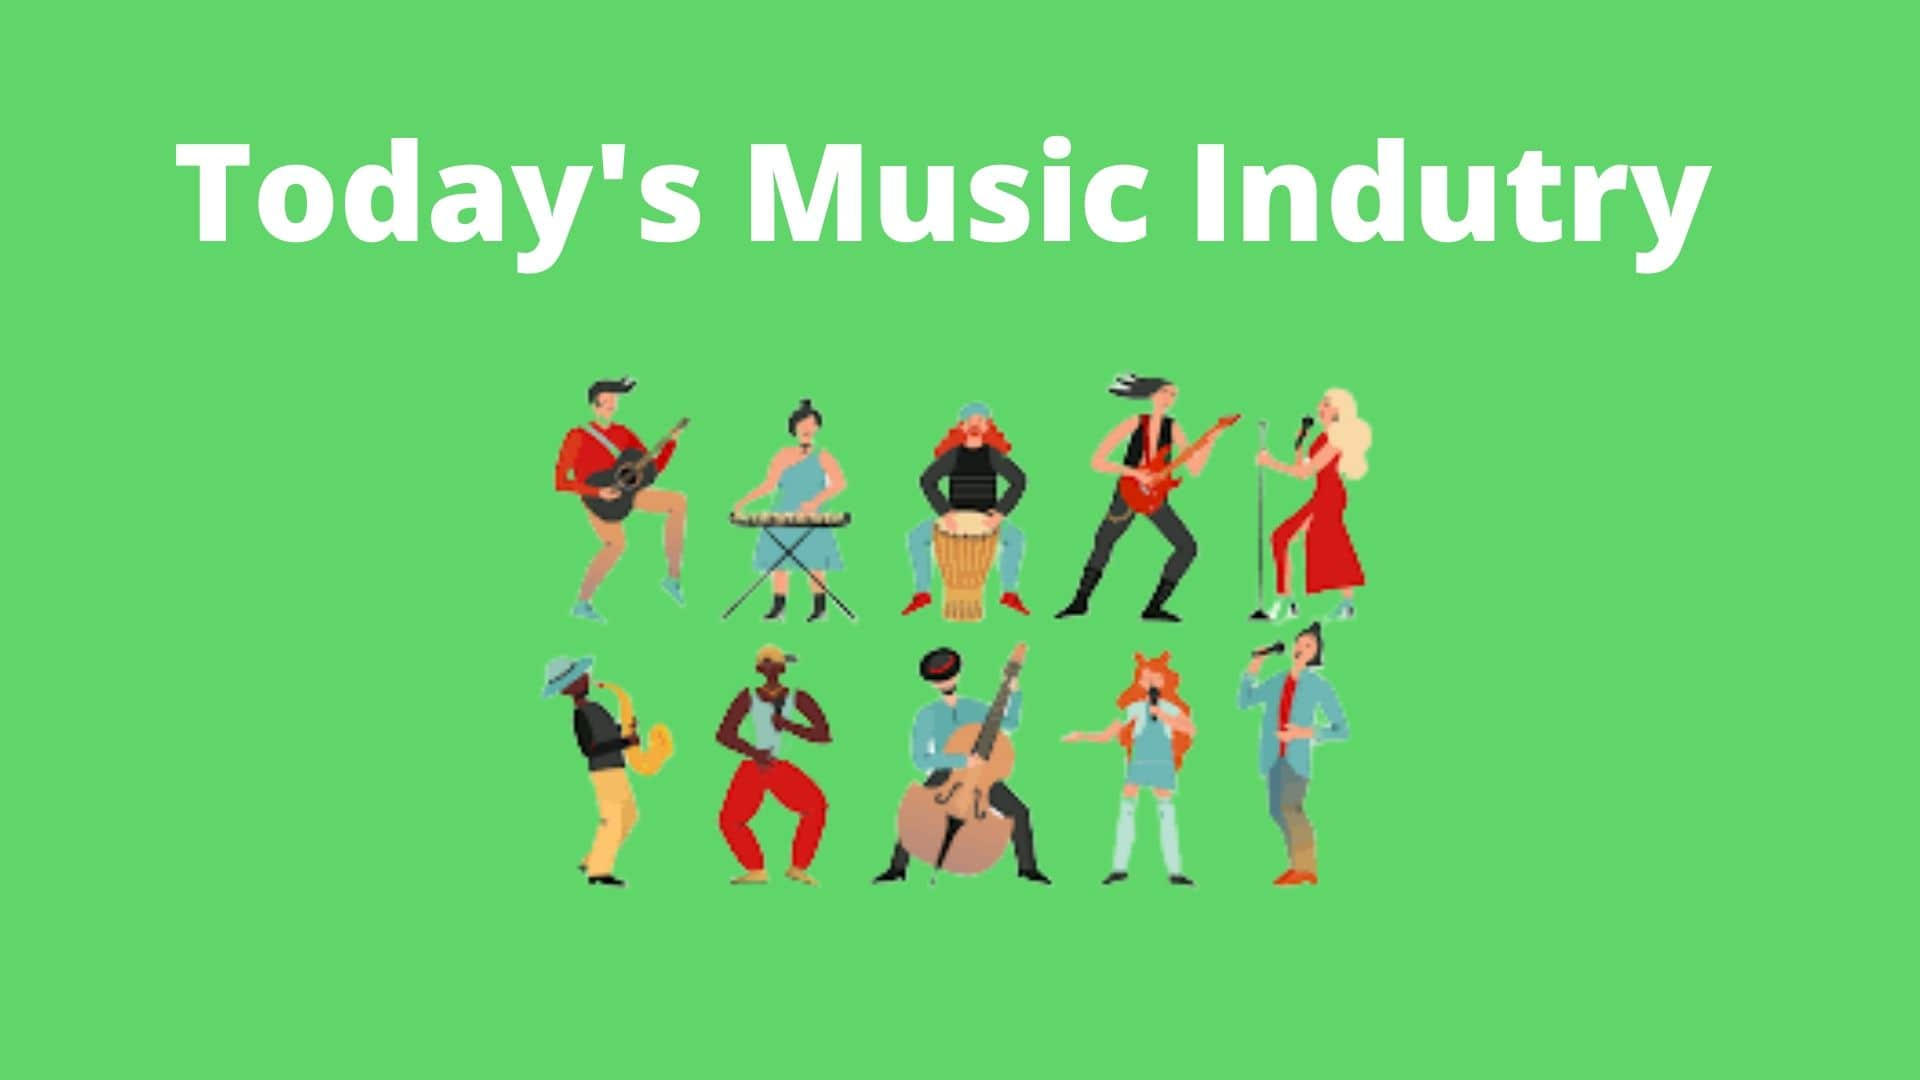 Today's Music Industry